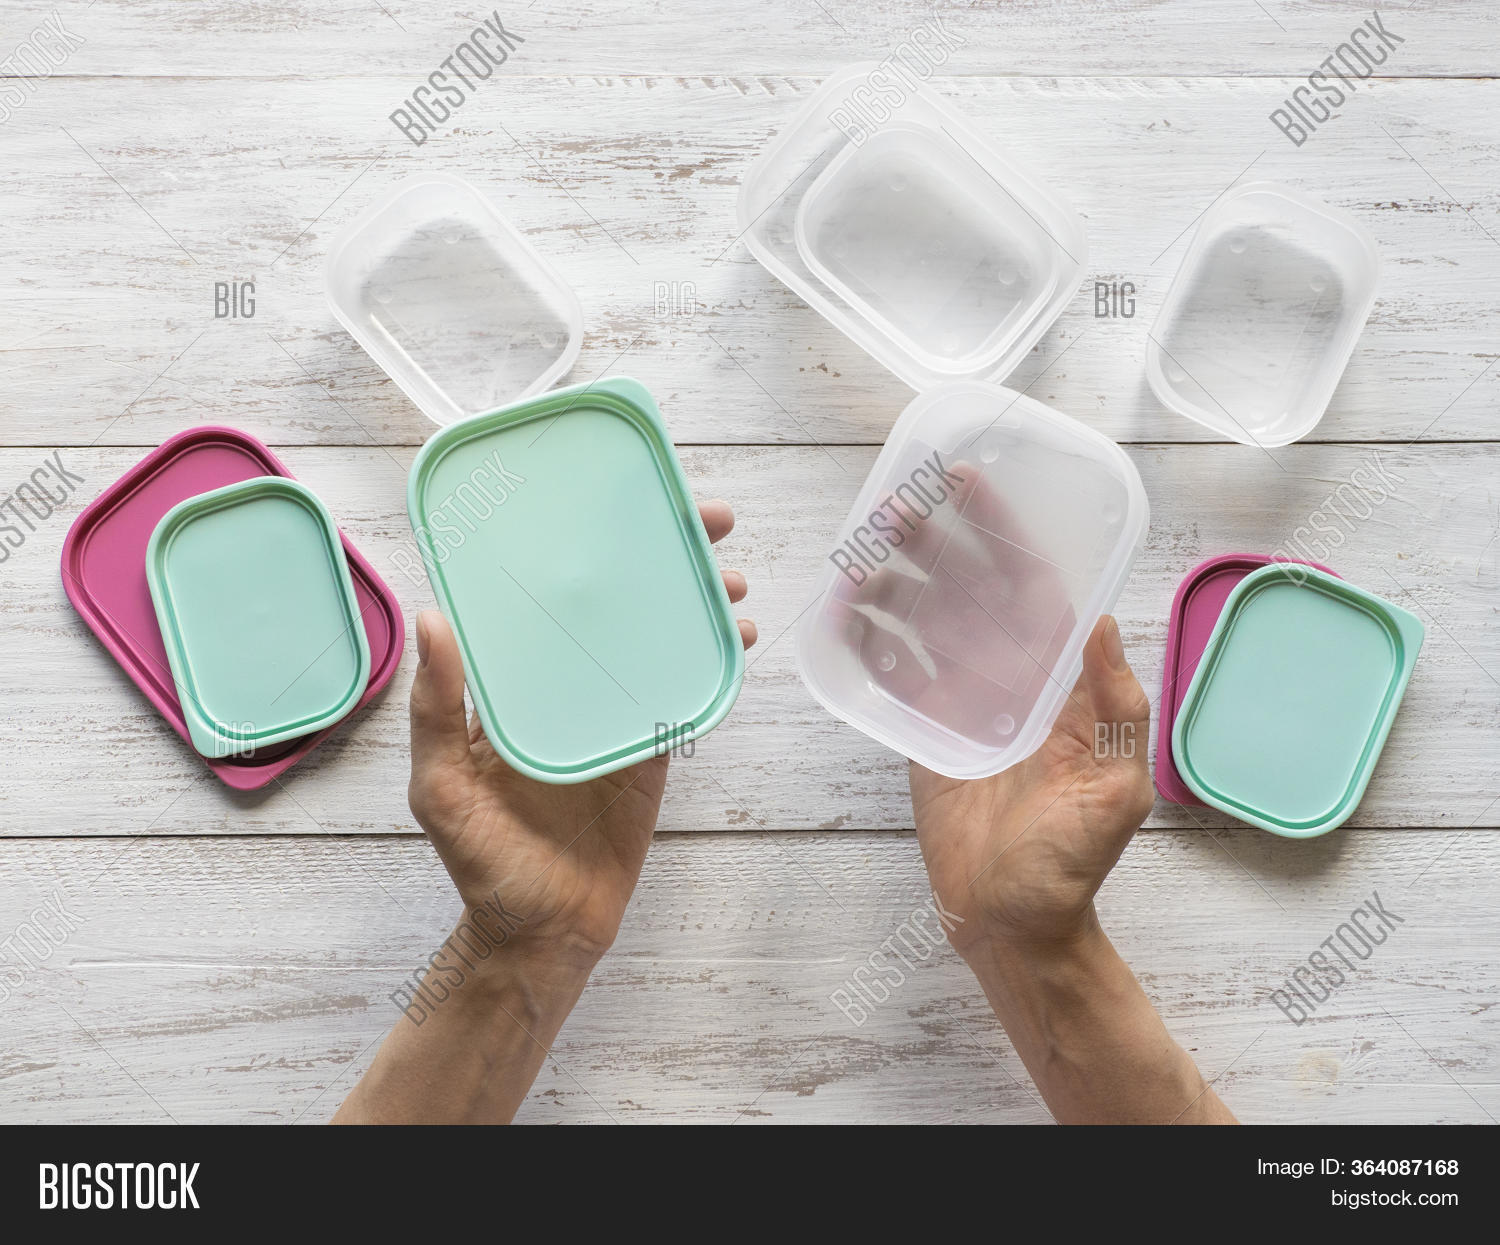 Plastic Containers For Transportation And Storage Food Products.